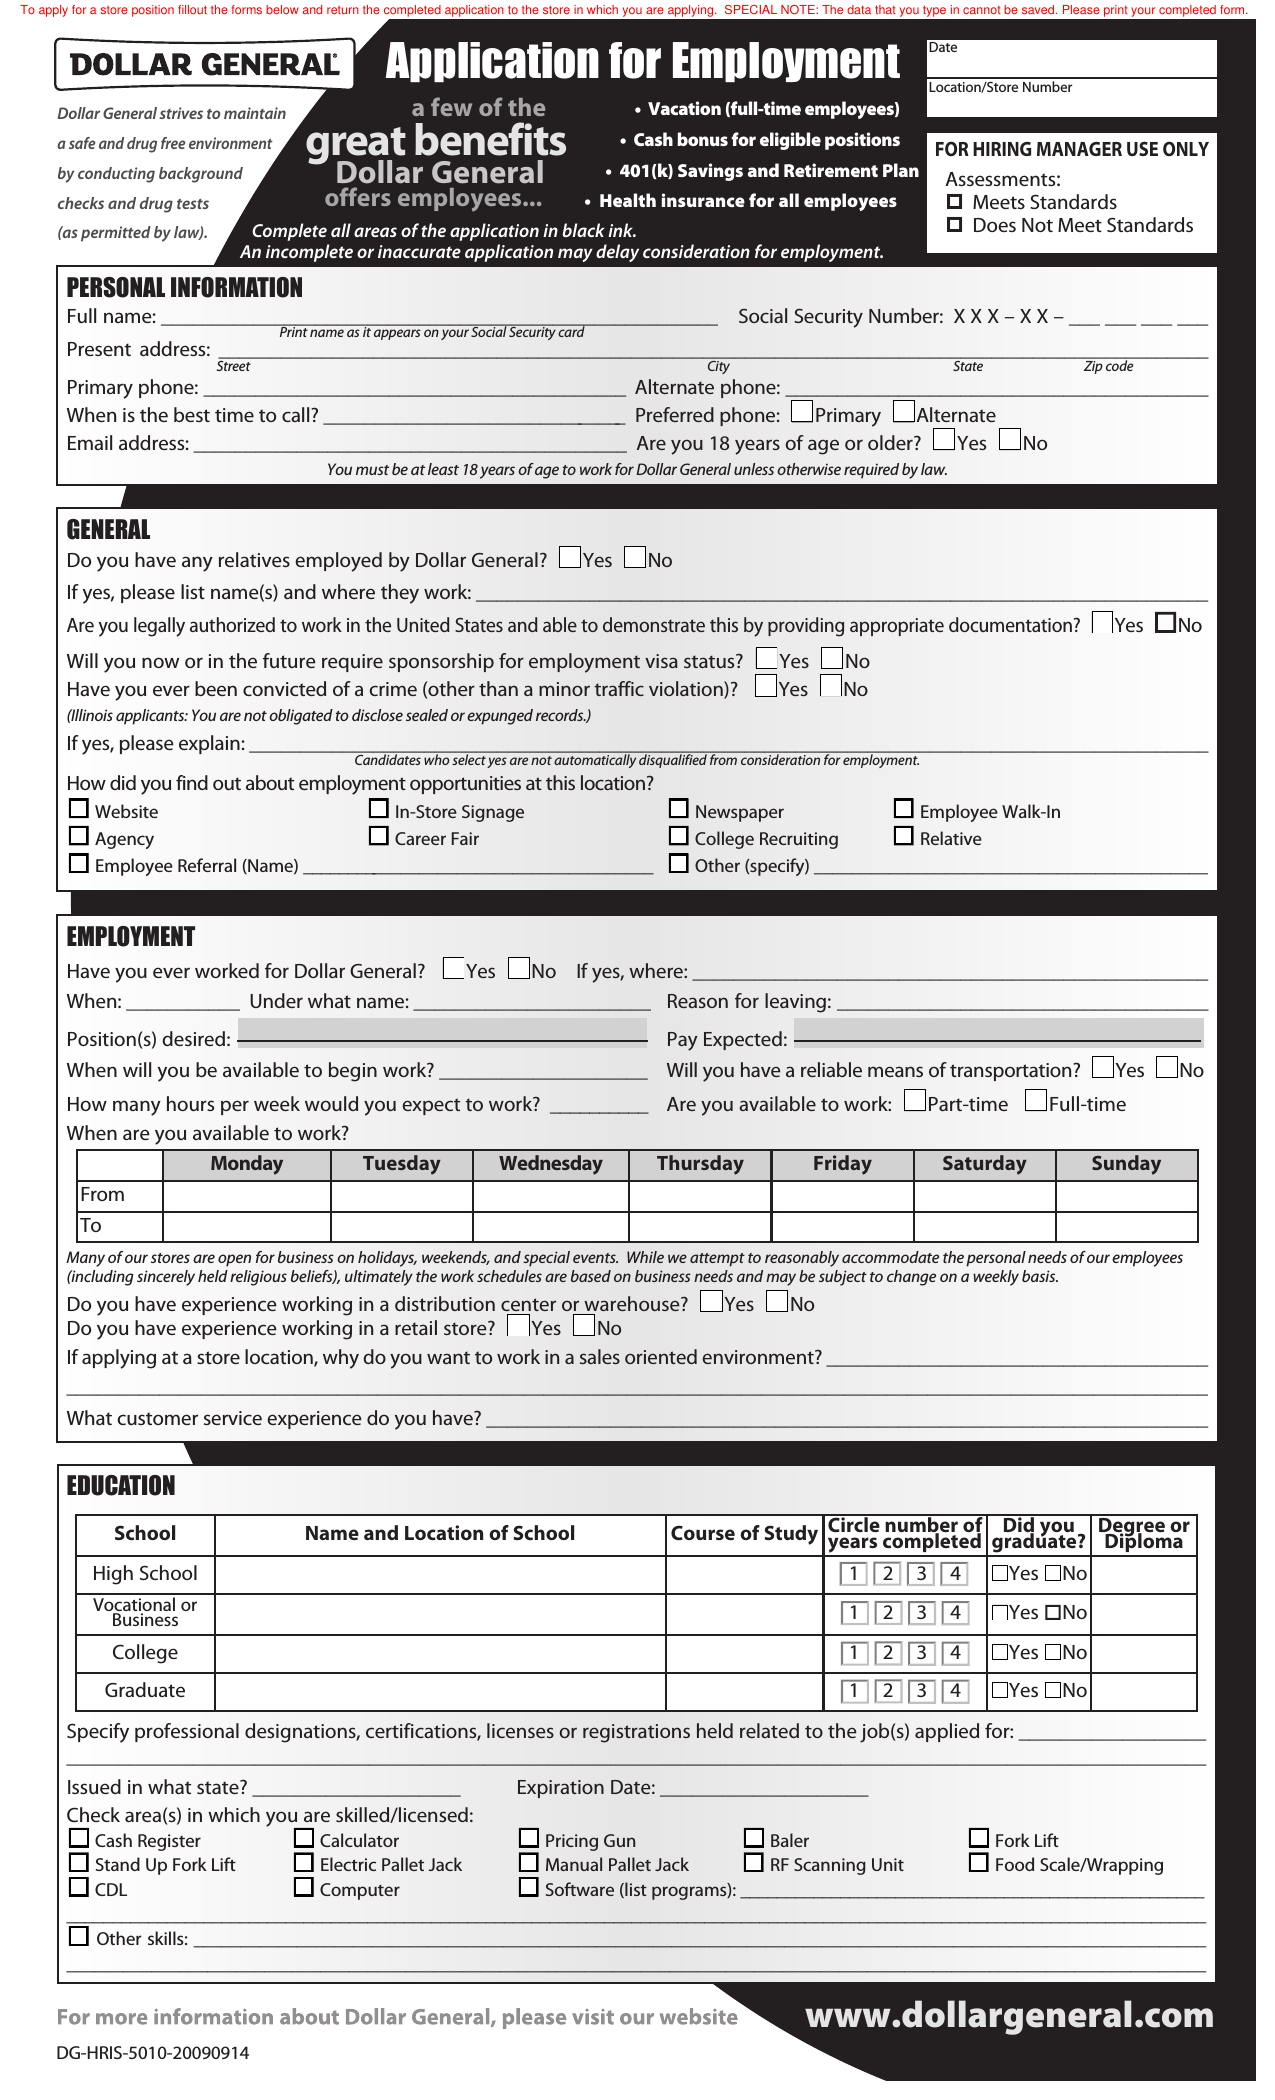 Dollar General Application Pdf